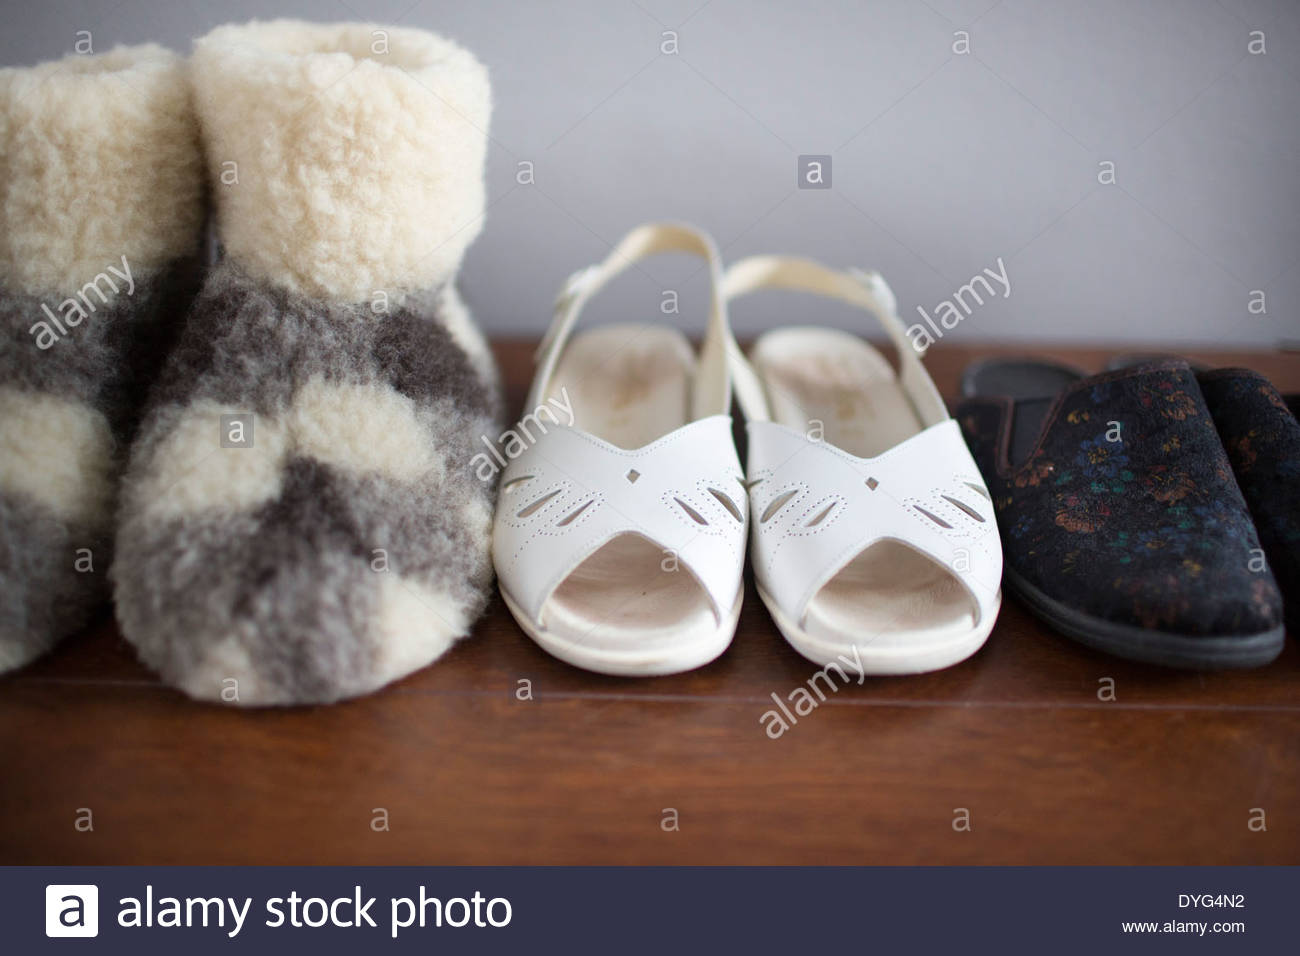 Close-up of slippers - Stock Image